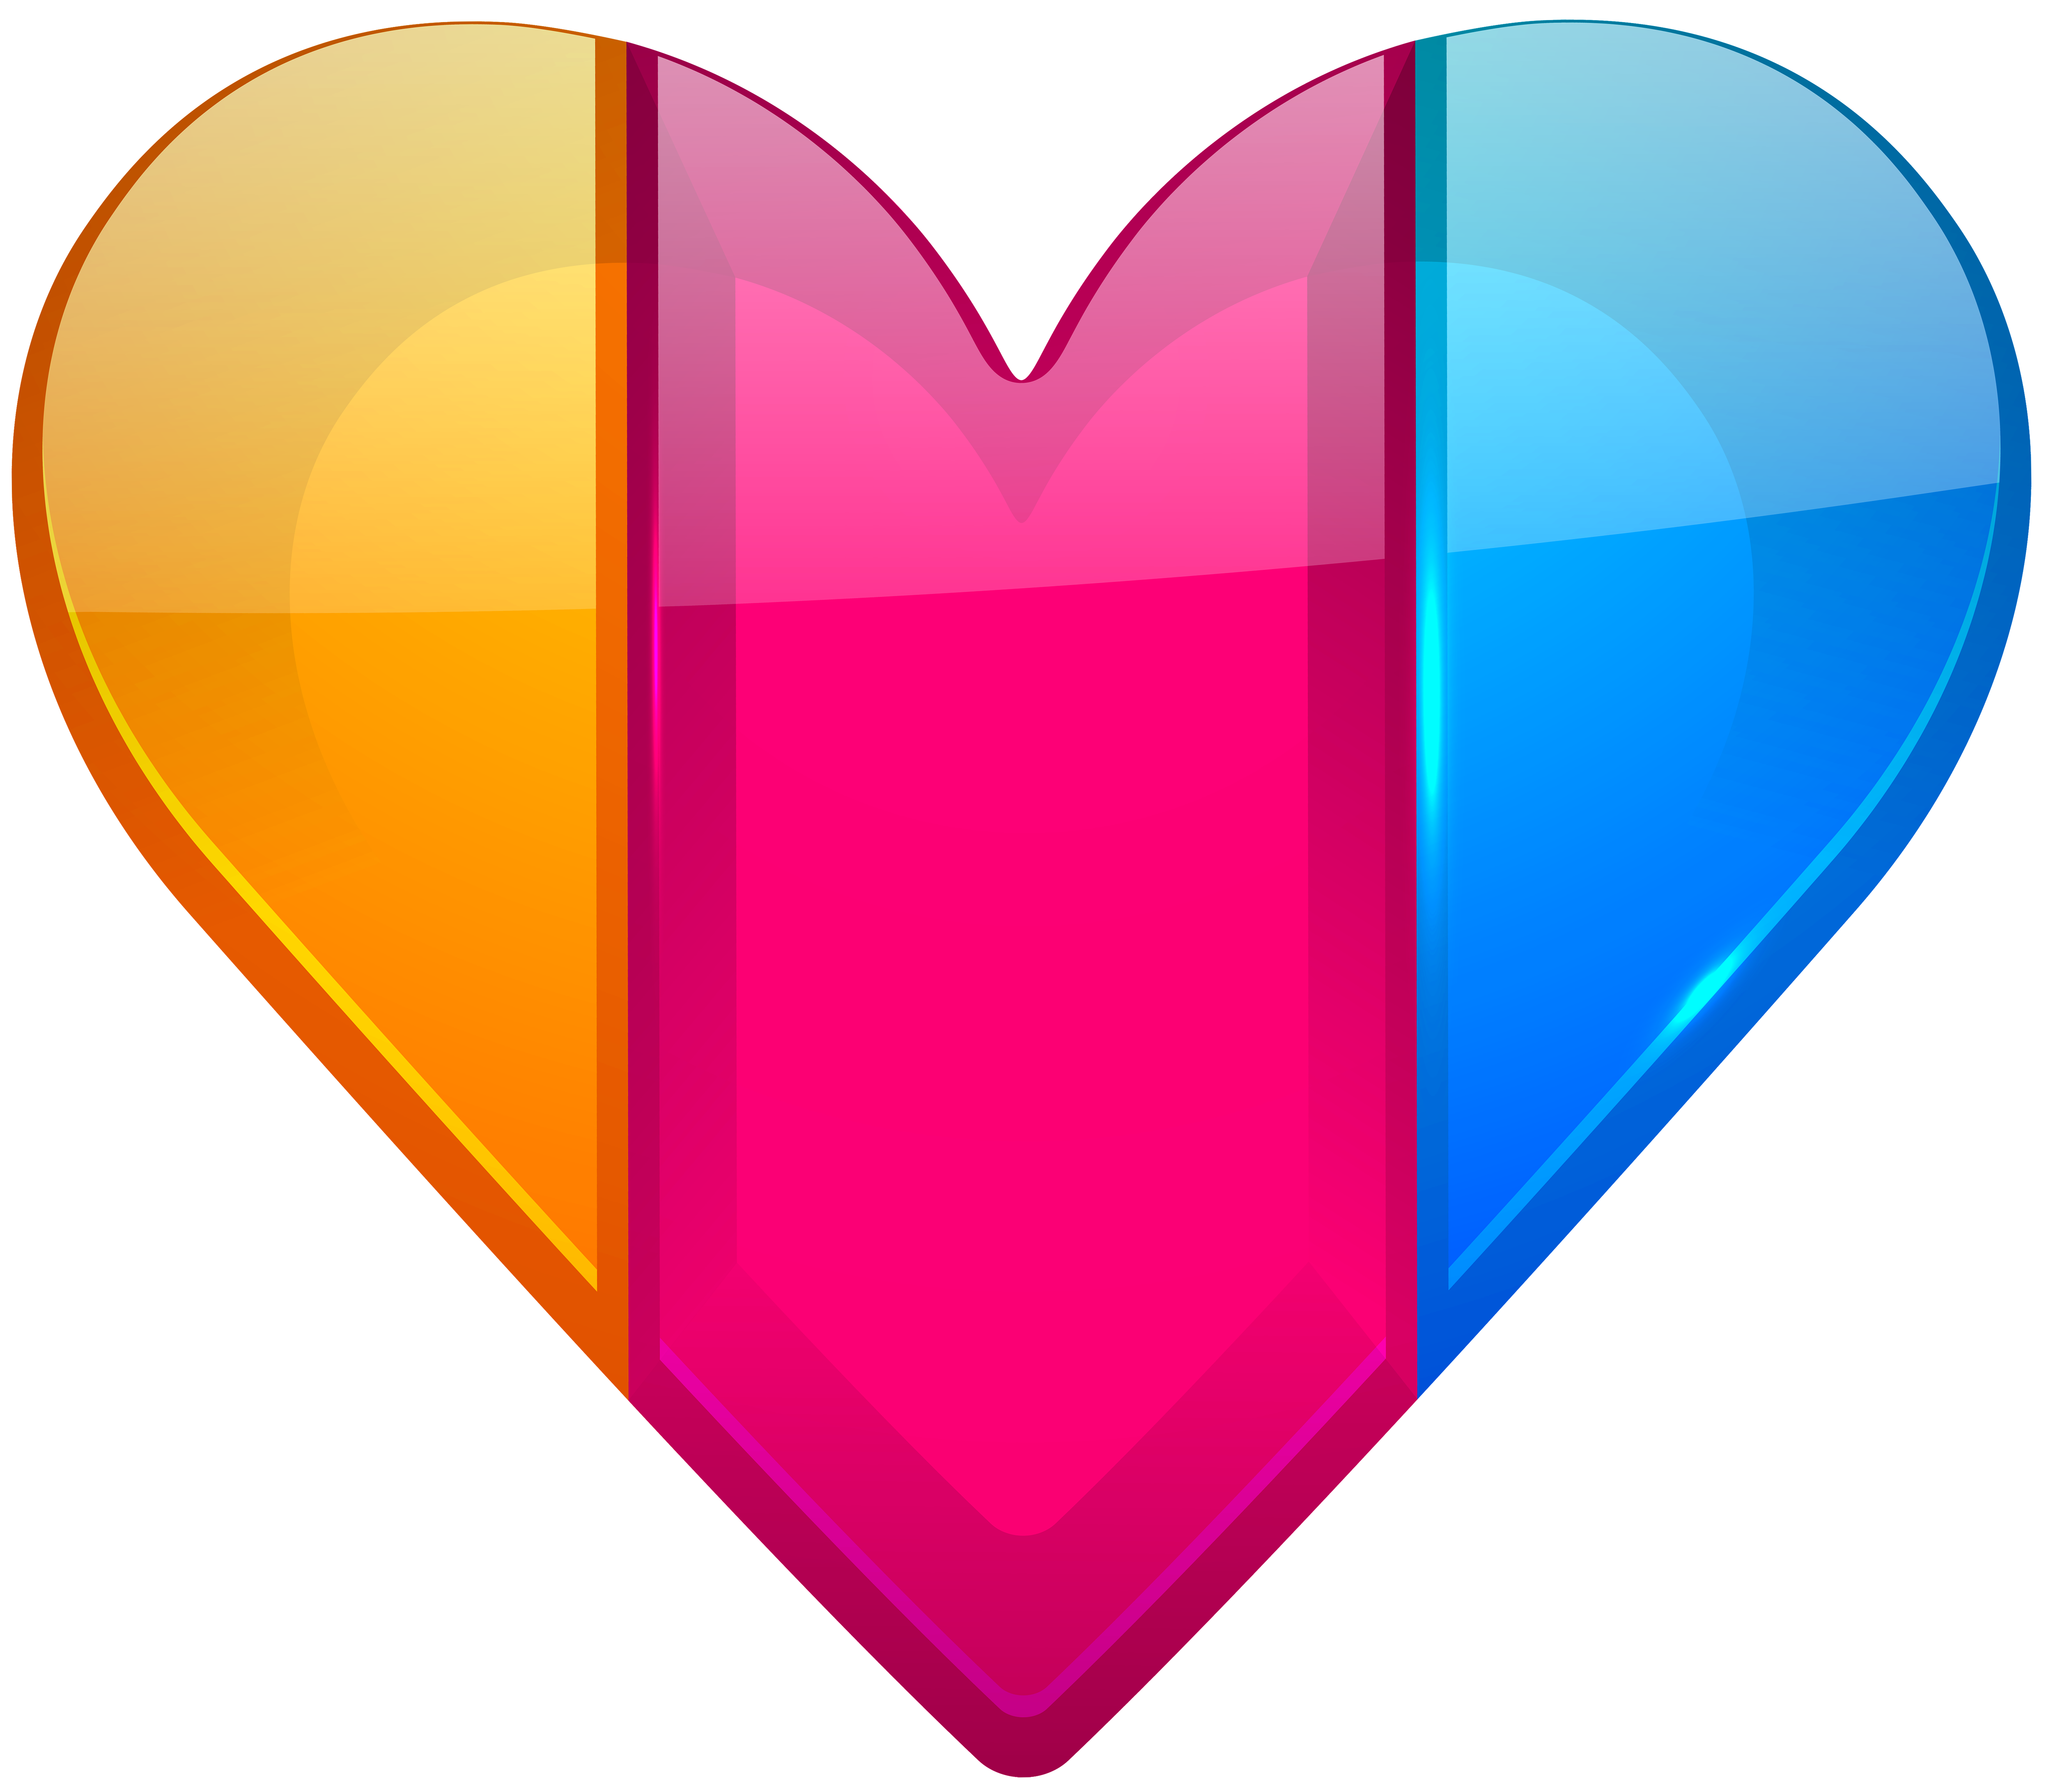 Hearts clipart vegetable. Colorful heart png best